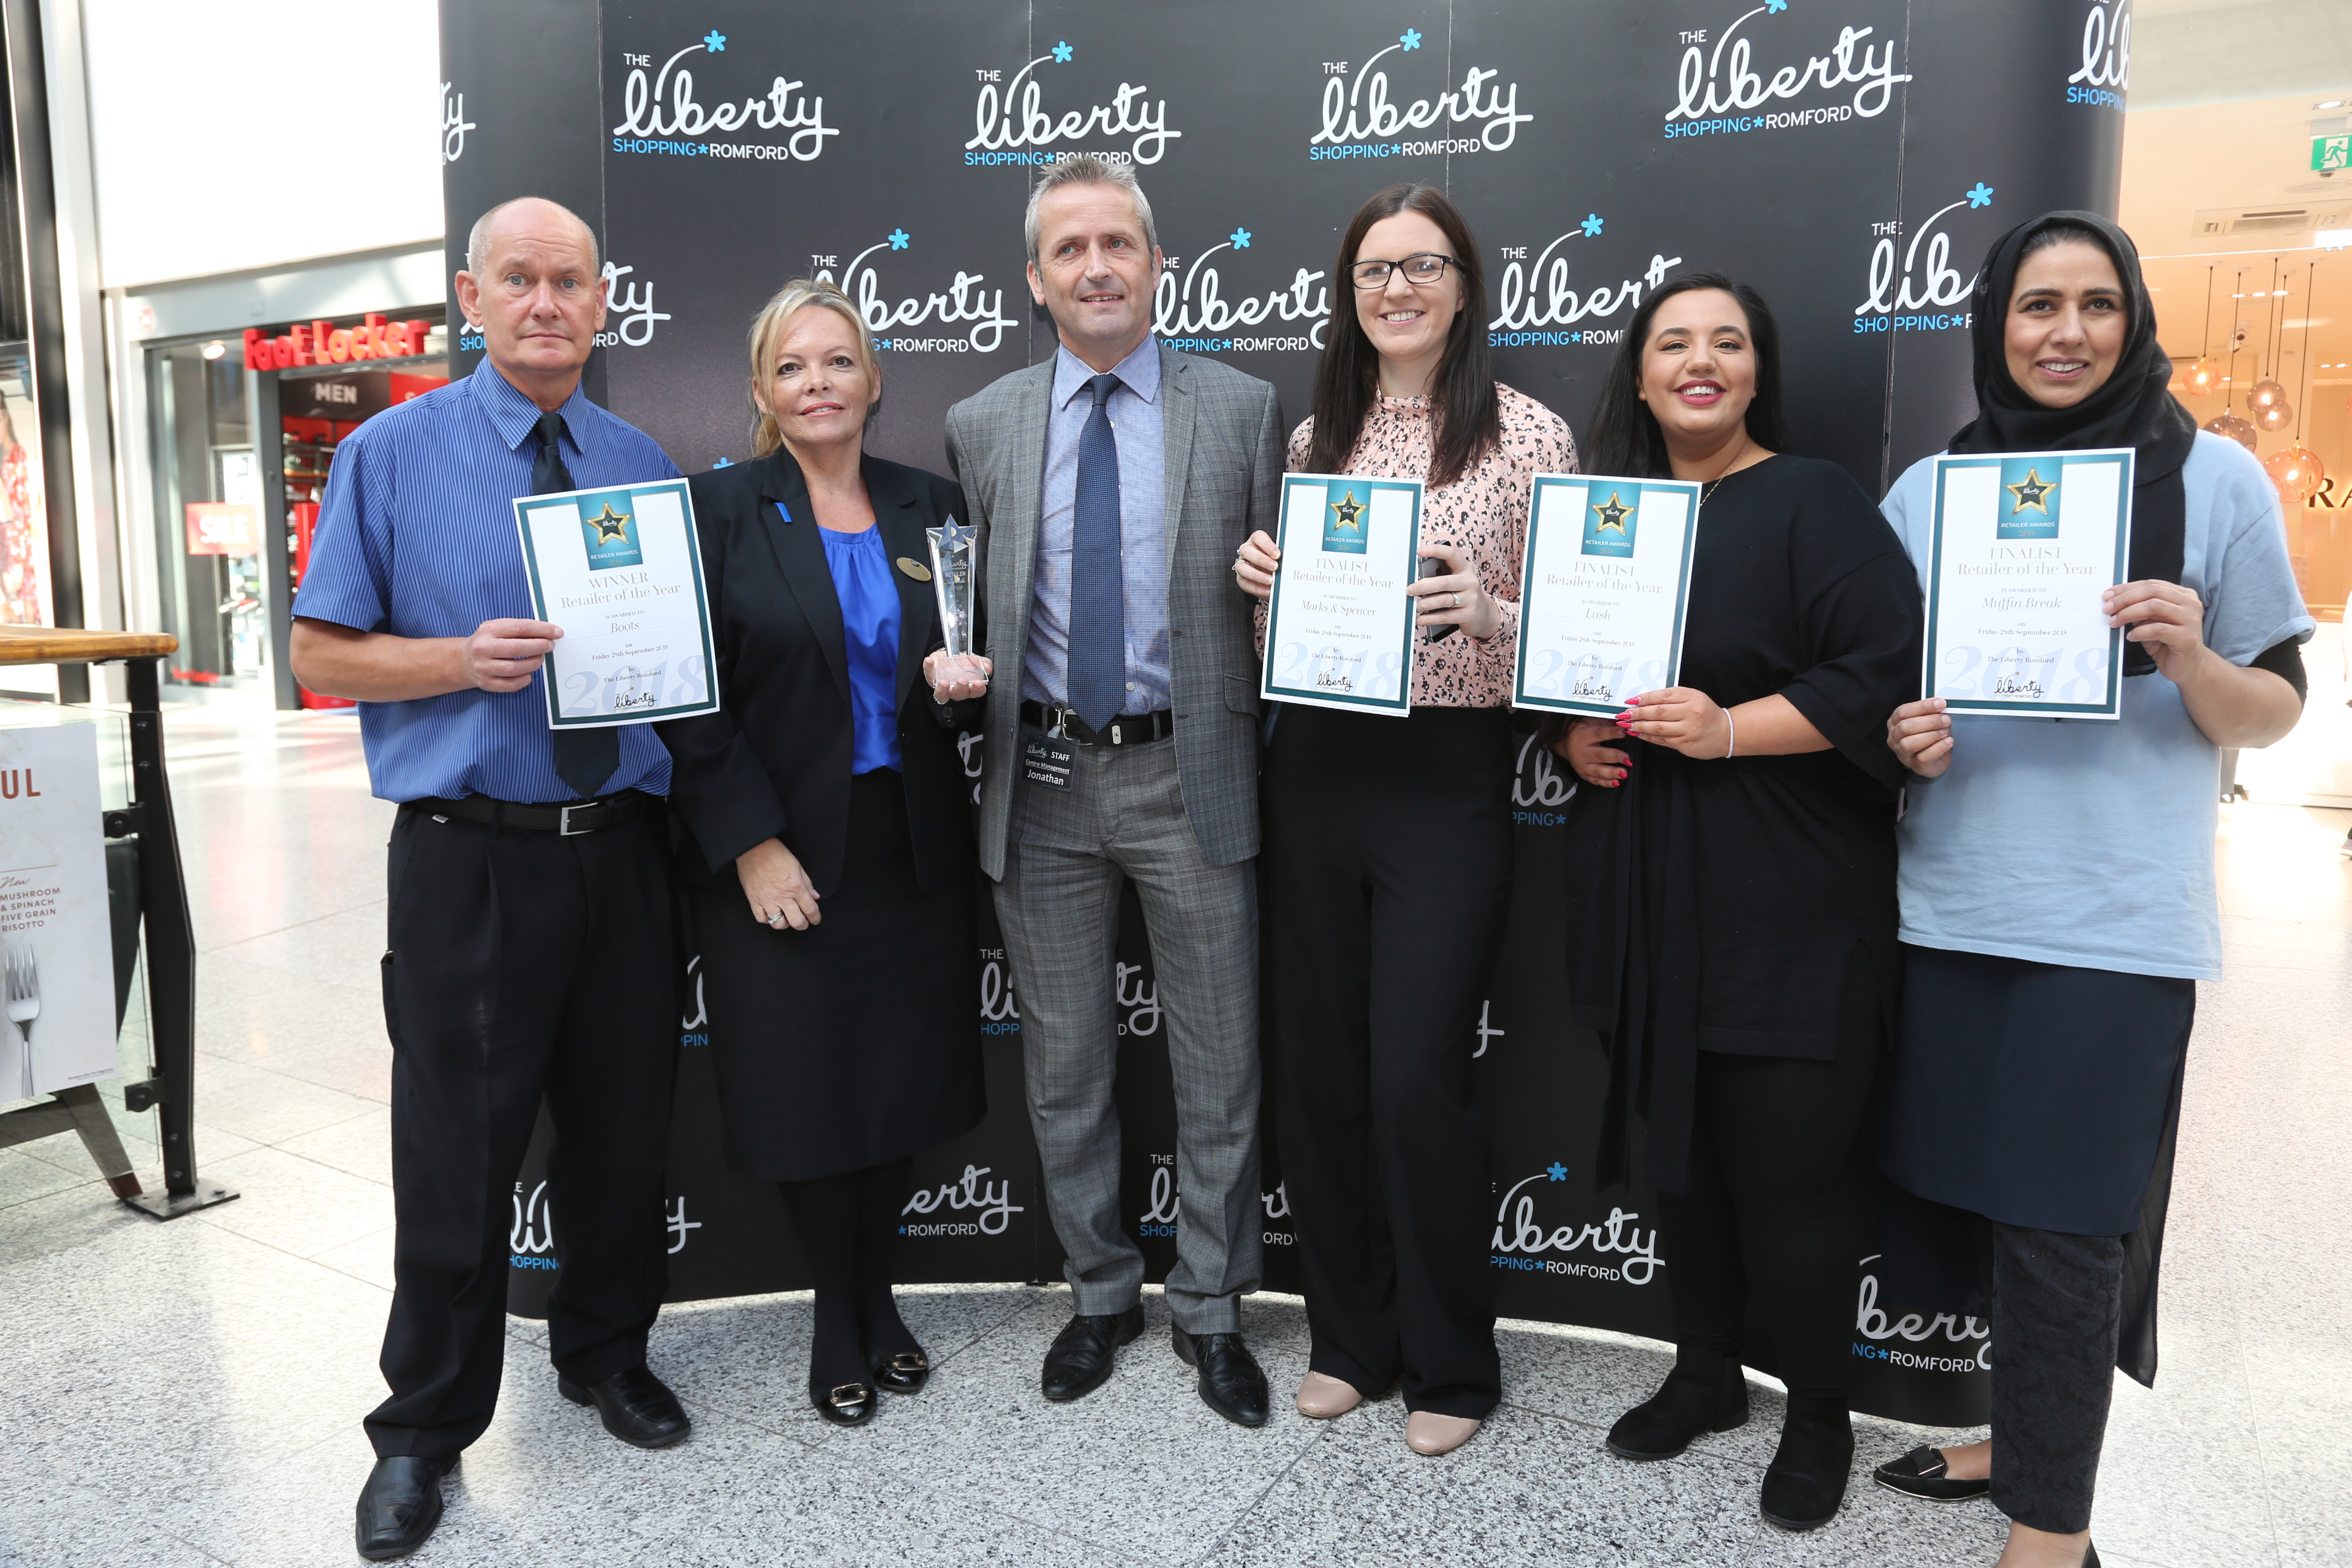 Image: S.Rowse. Retailer of the year award winner: Tony Webb and Belinda Pritchard from Boots,  Centre Manager Jonathan Poole, finalist  Ellie Chamberlain from Marks & Spencer, finalist  Sofia Kasapi from Lush, finalist Nasriya  Shaffi from Muffin Break